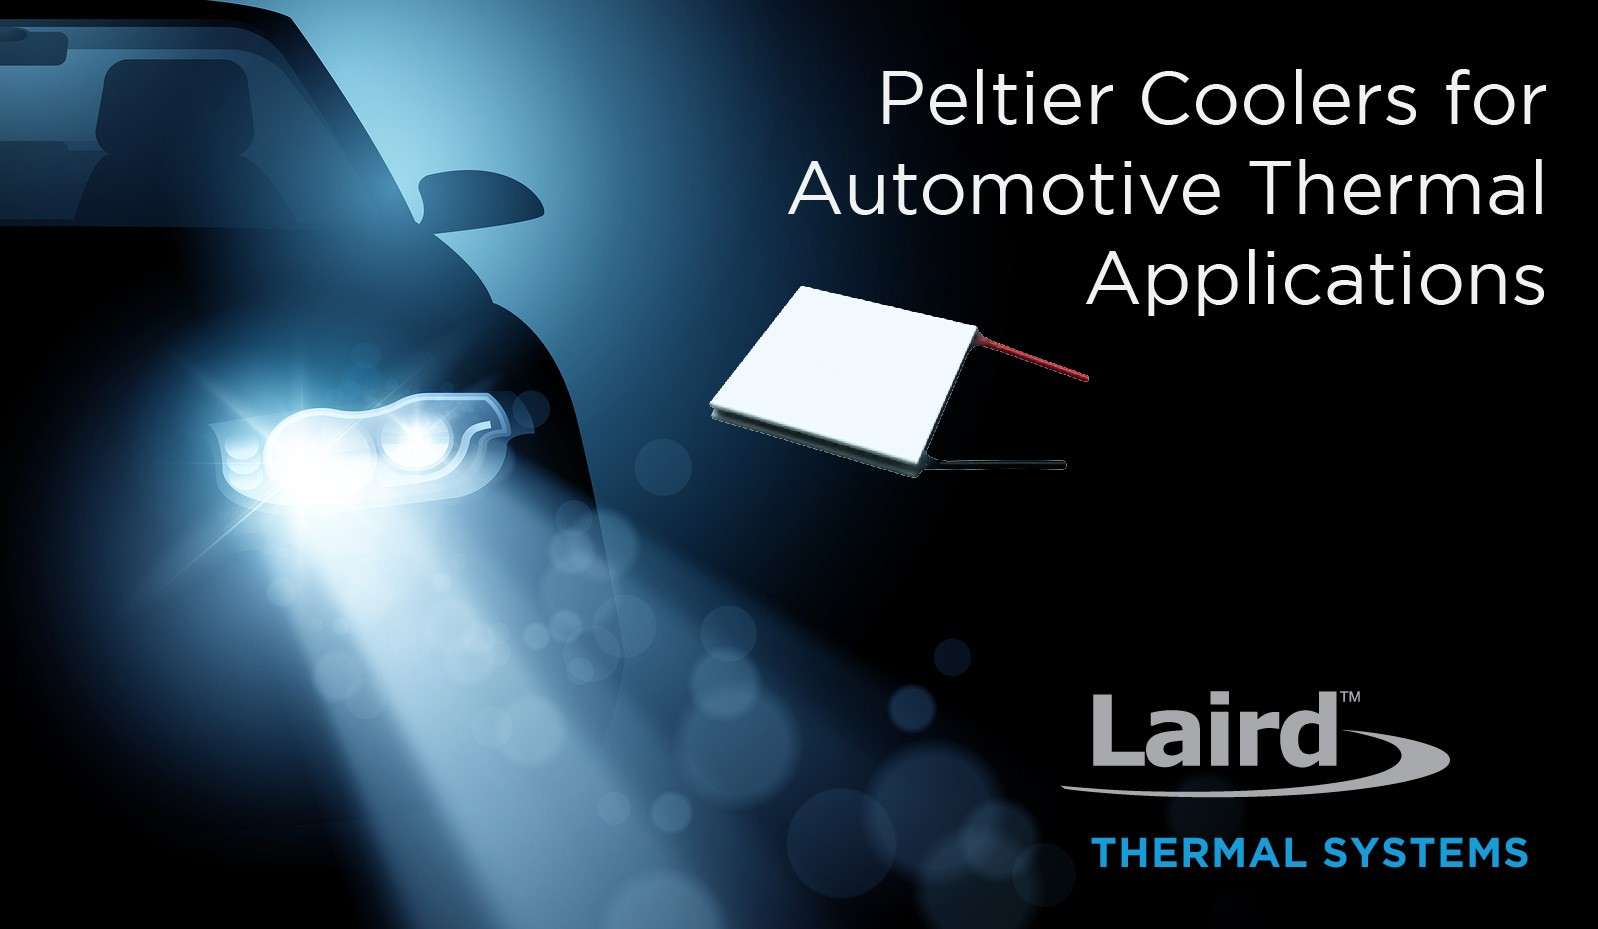 Peltier Coolers Provide Thermal Stability